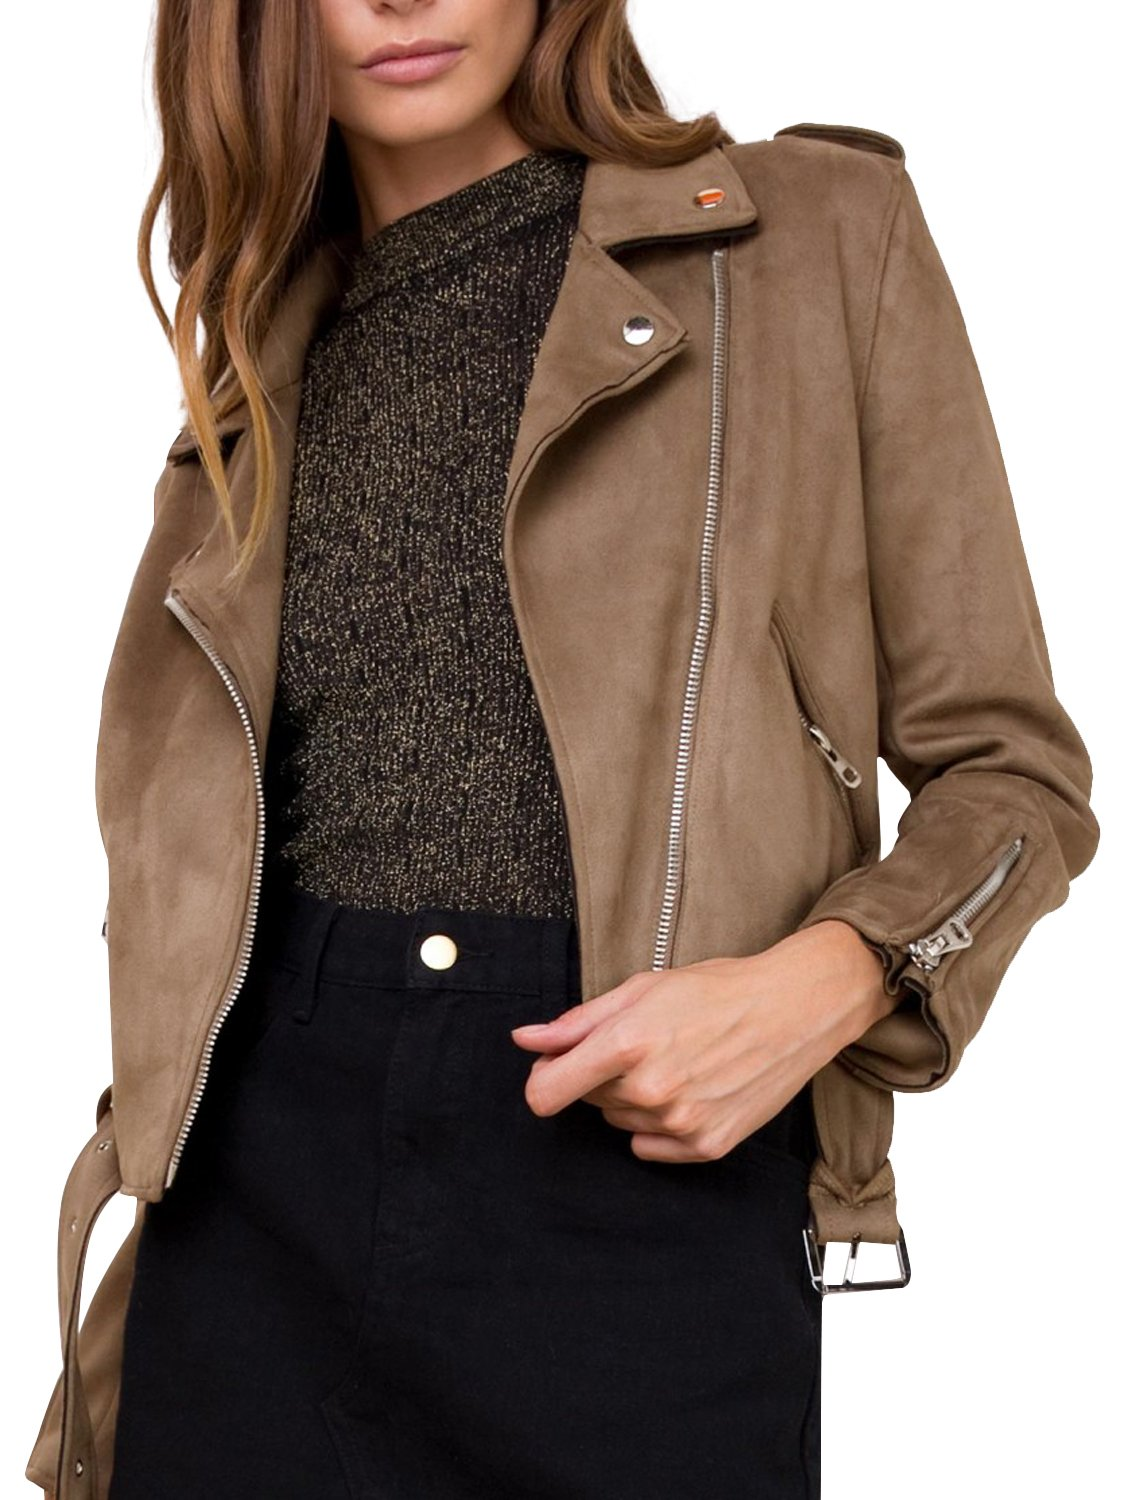 Simplee Women's Faux Suede Leather Motorcycle Jacket Belted Coat with Zipper, Brown, 10, Large